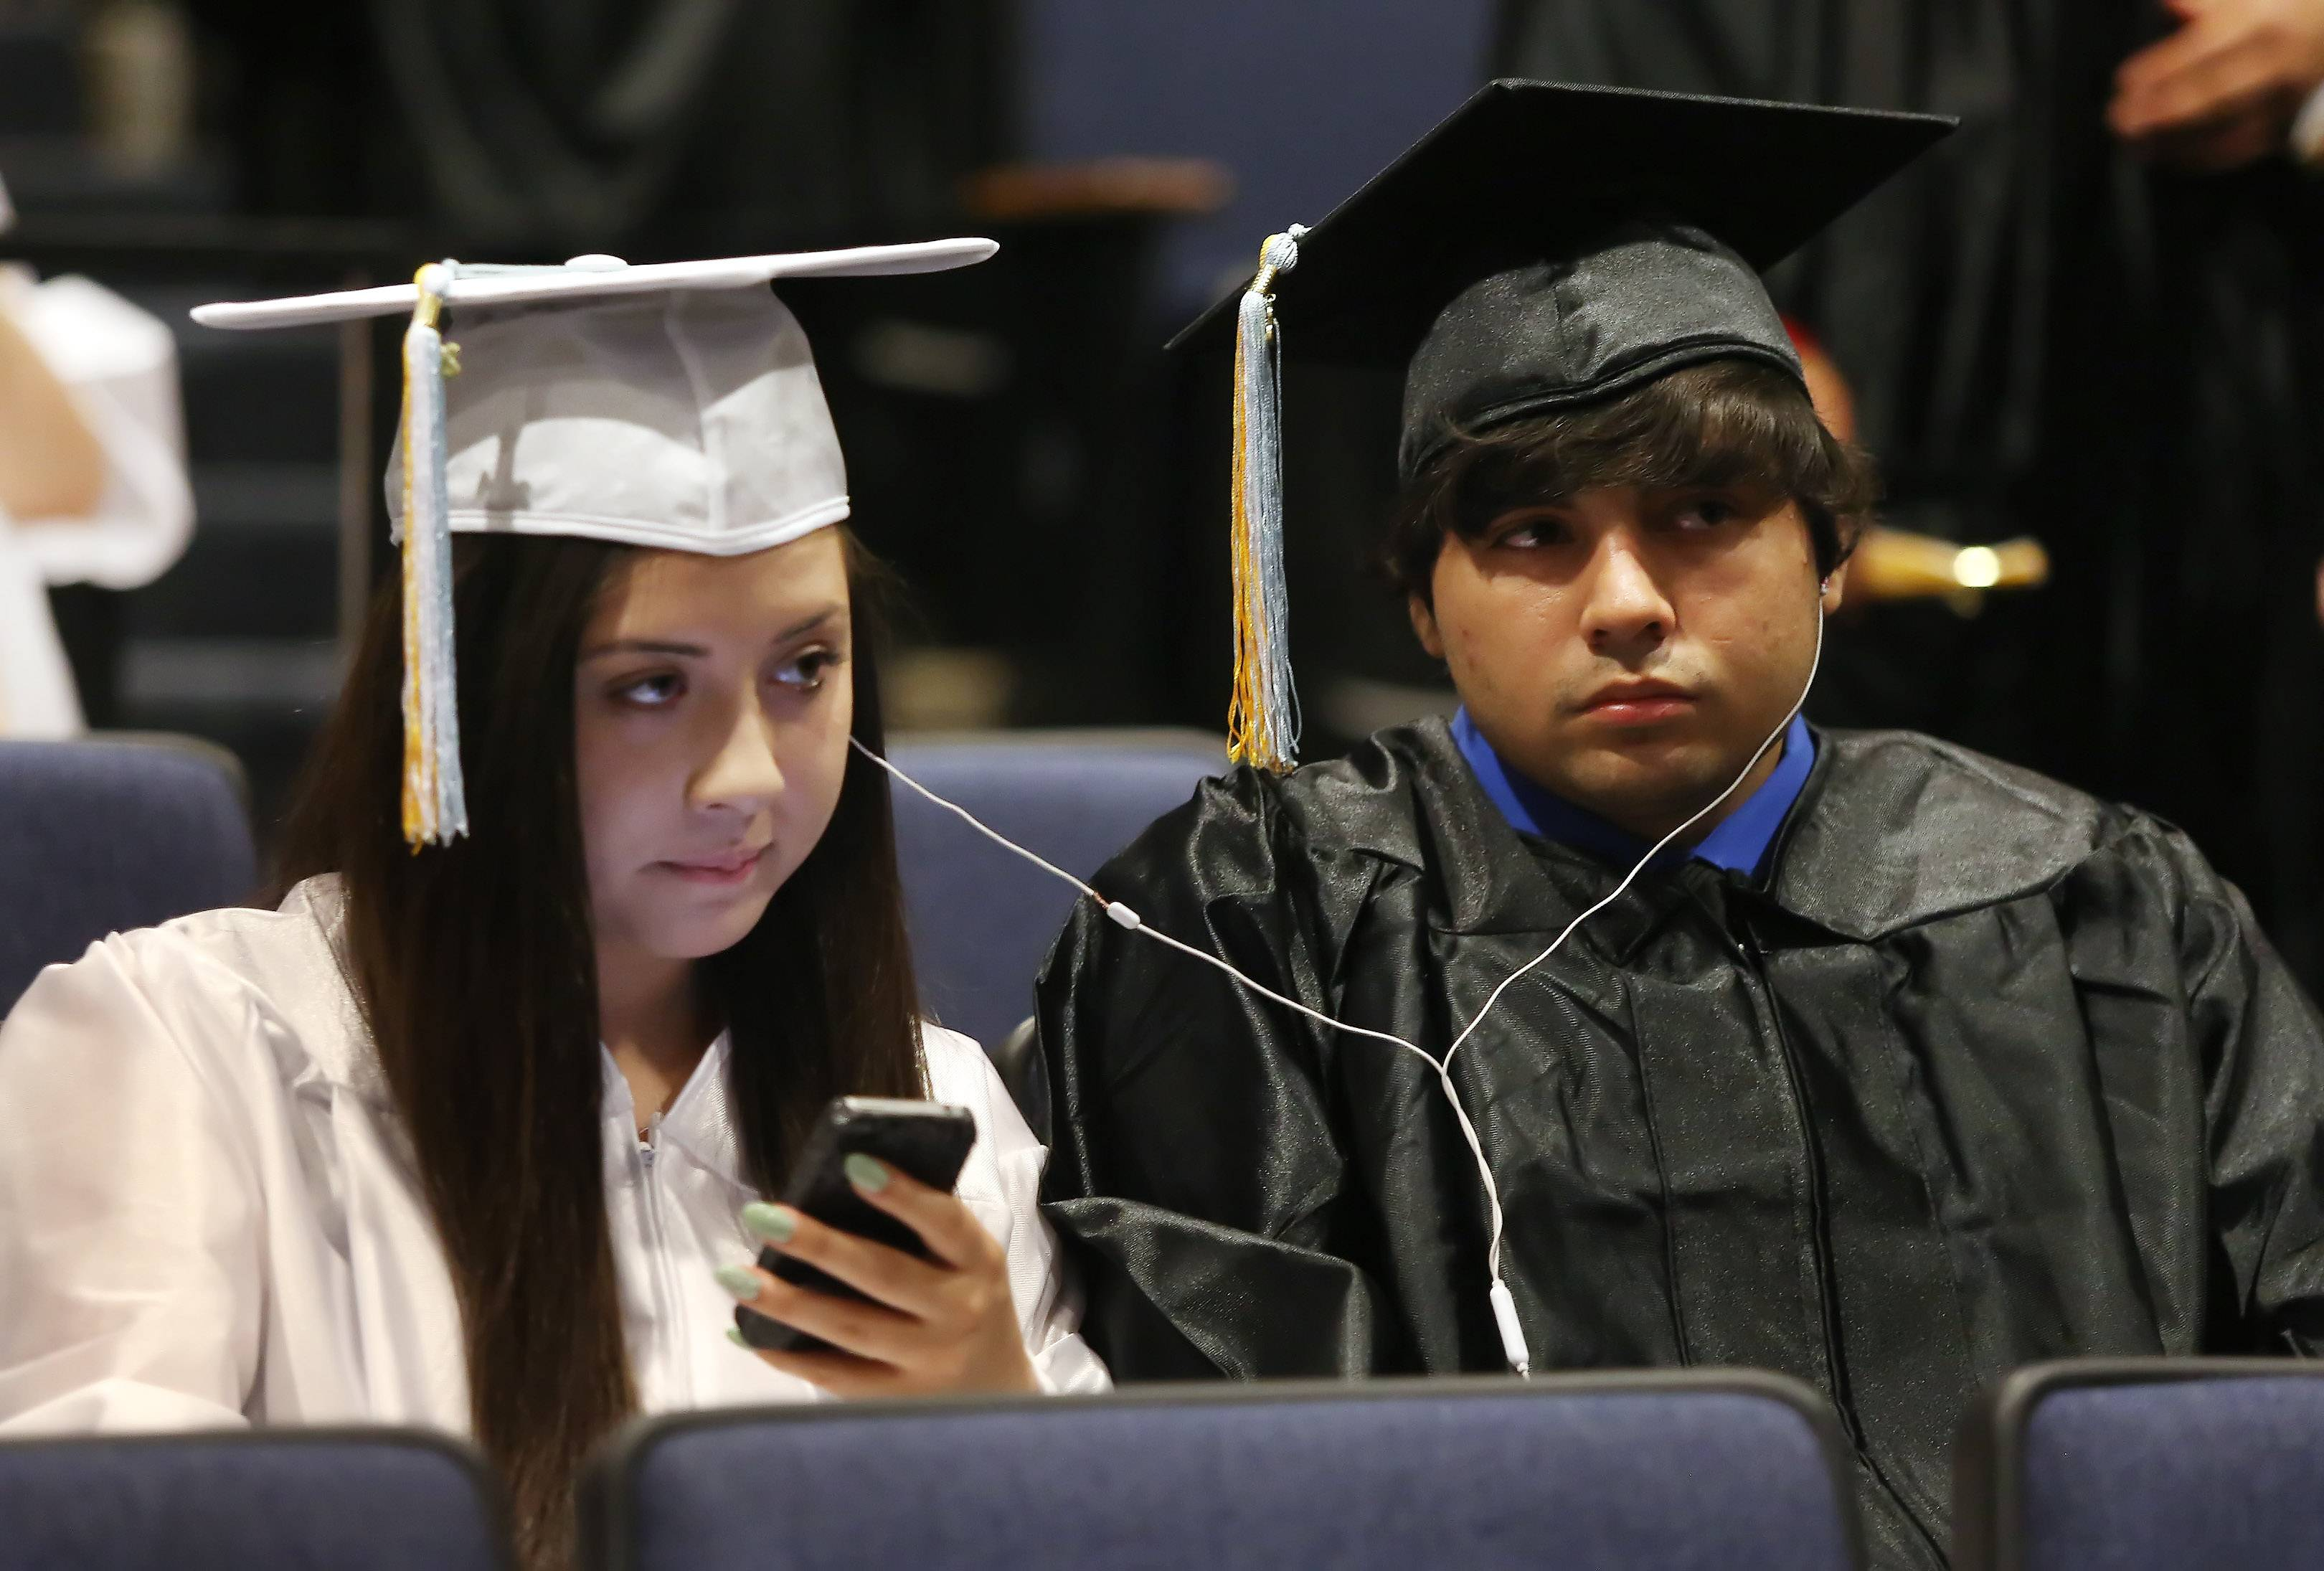 Amanda Salazar, left, and Alex Gonzalez listen to the Chicago Cubs game together during the Maine West High School graduation on Sunday in Des Plaines. Over 500 seniors received their diplomas in the outdoor commencement ceremony.